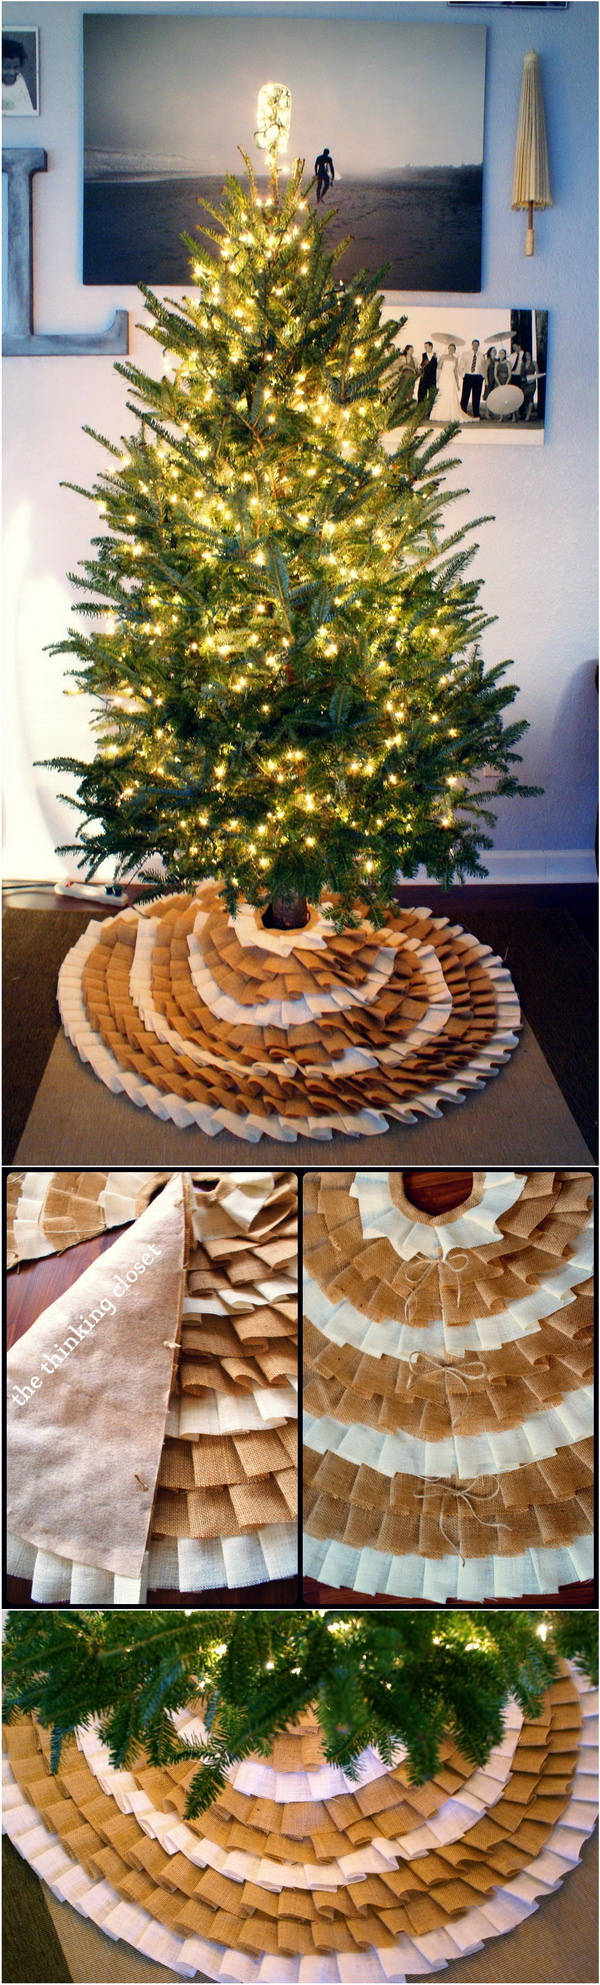 diy no sew ruffle christmas tree skirt - Country Christmas Tree Decorations